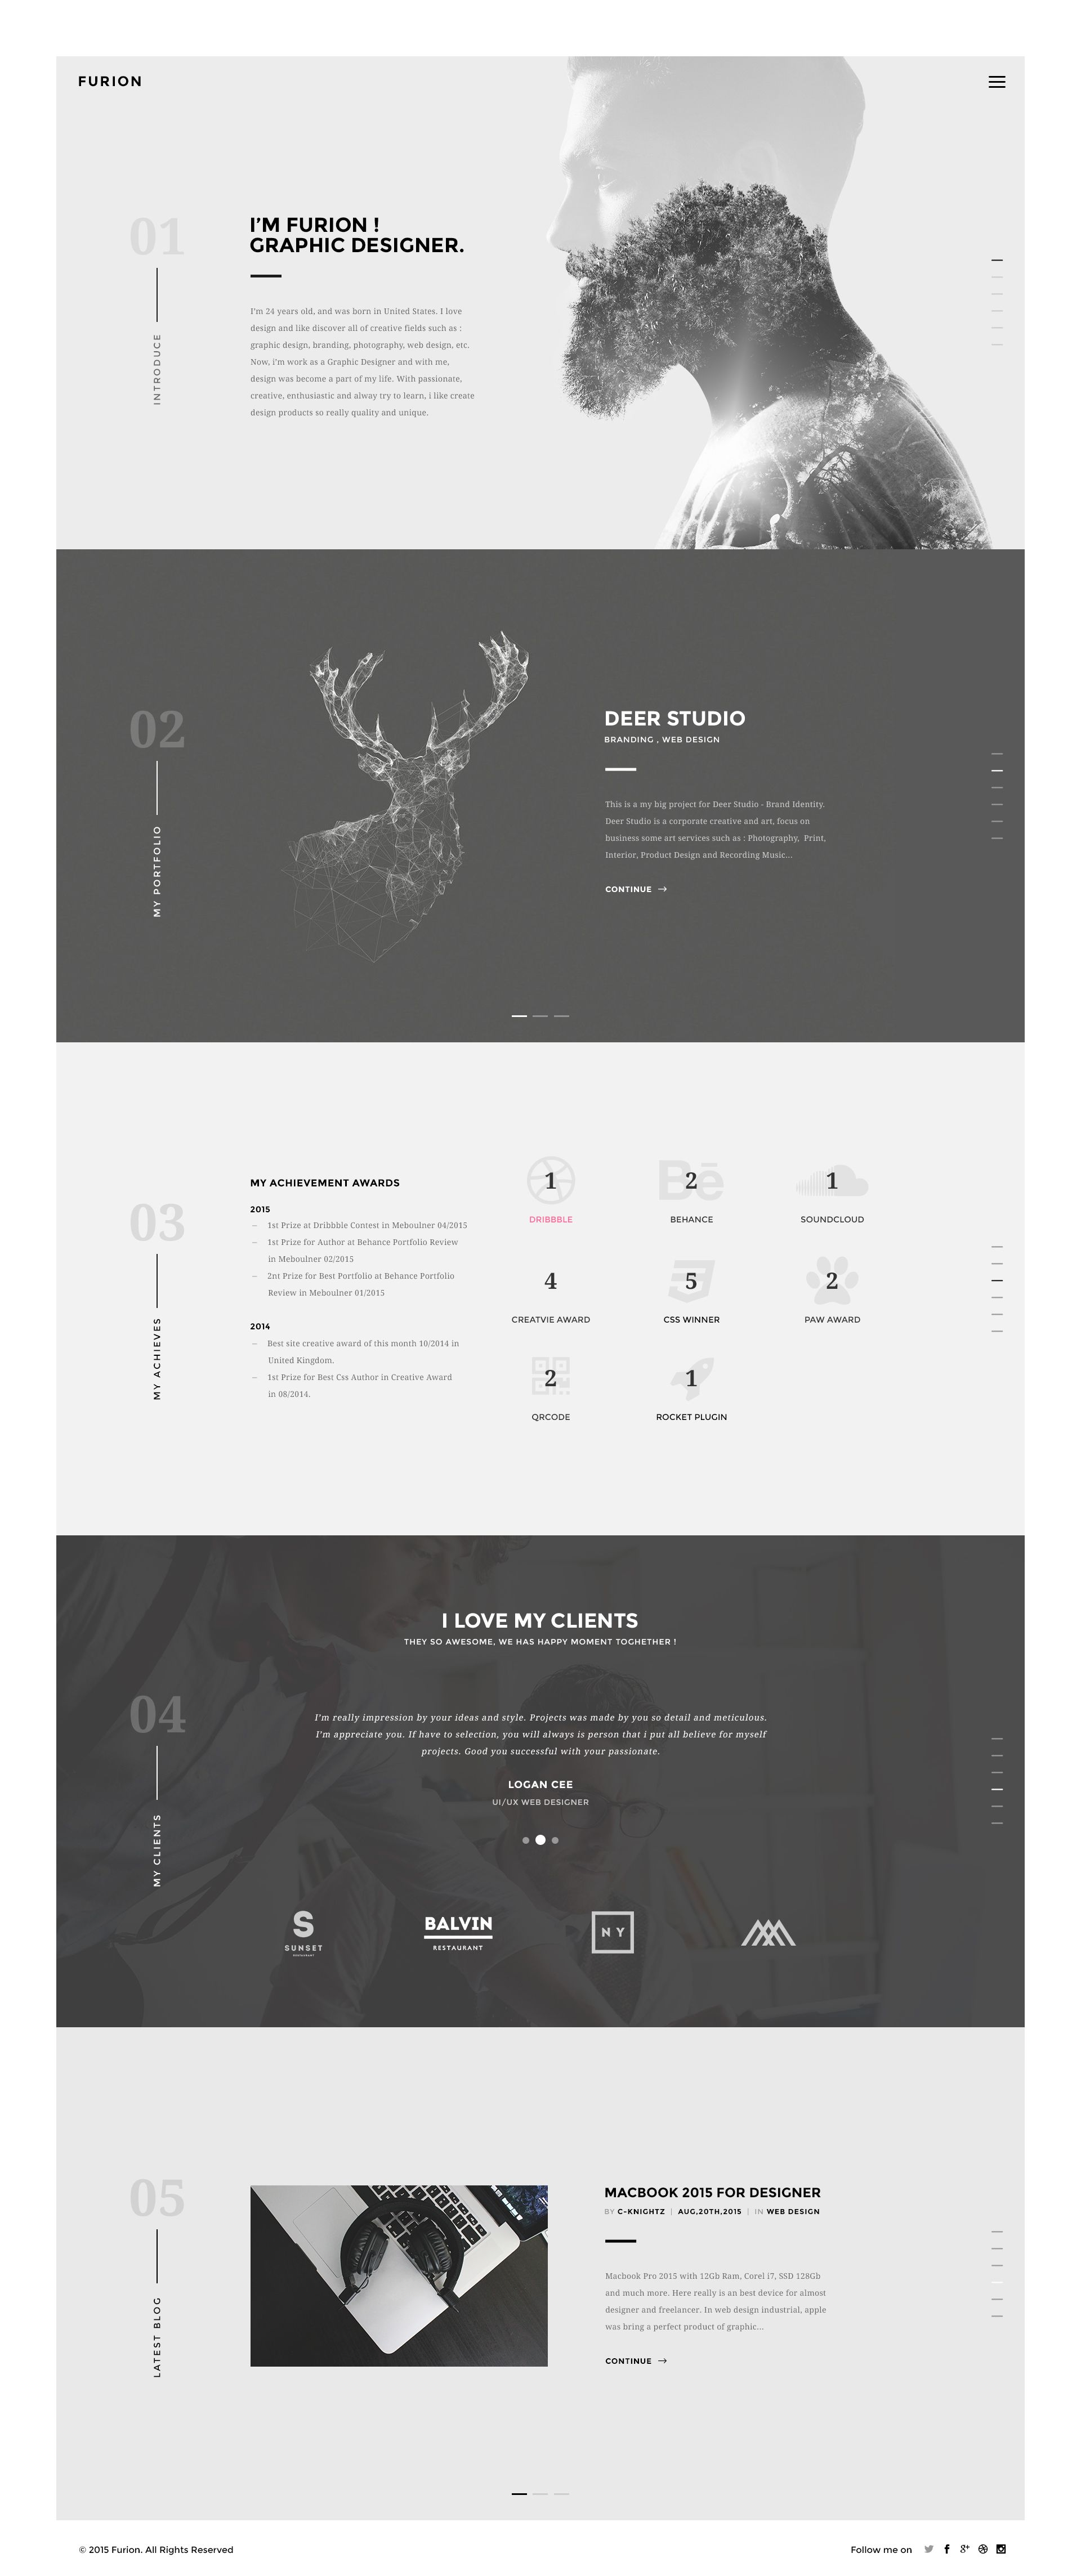 Hello Guys Continue With Project Furion Creative Wp Themes Here Is My New Shot An Other Home Page Web Design Portfolio Design Website Design Inspiration